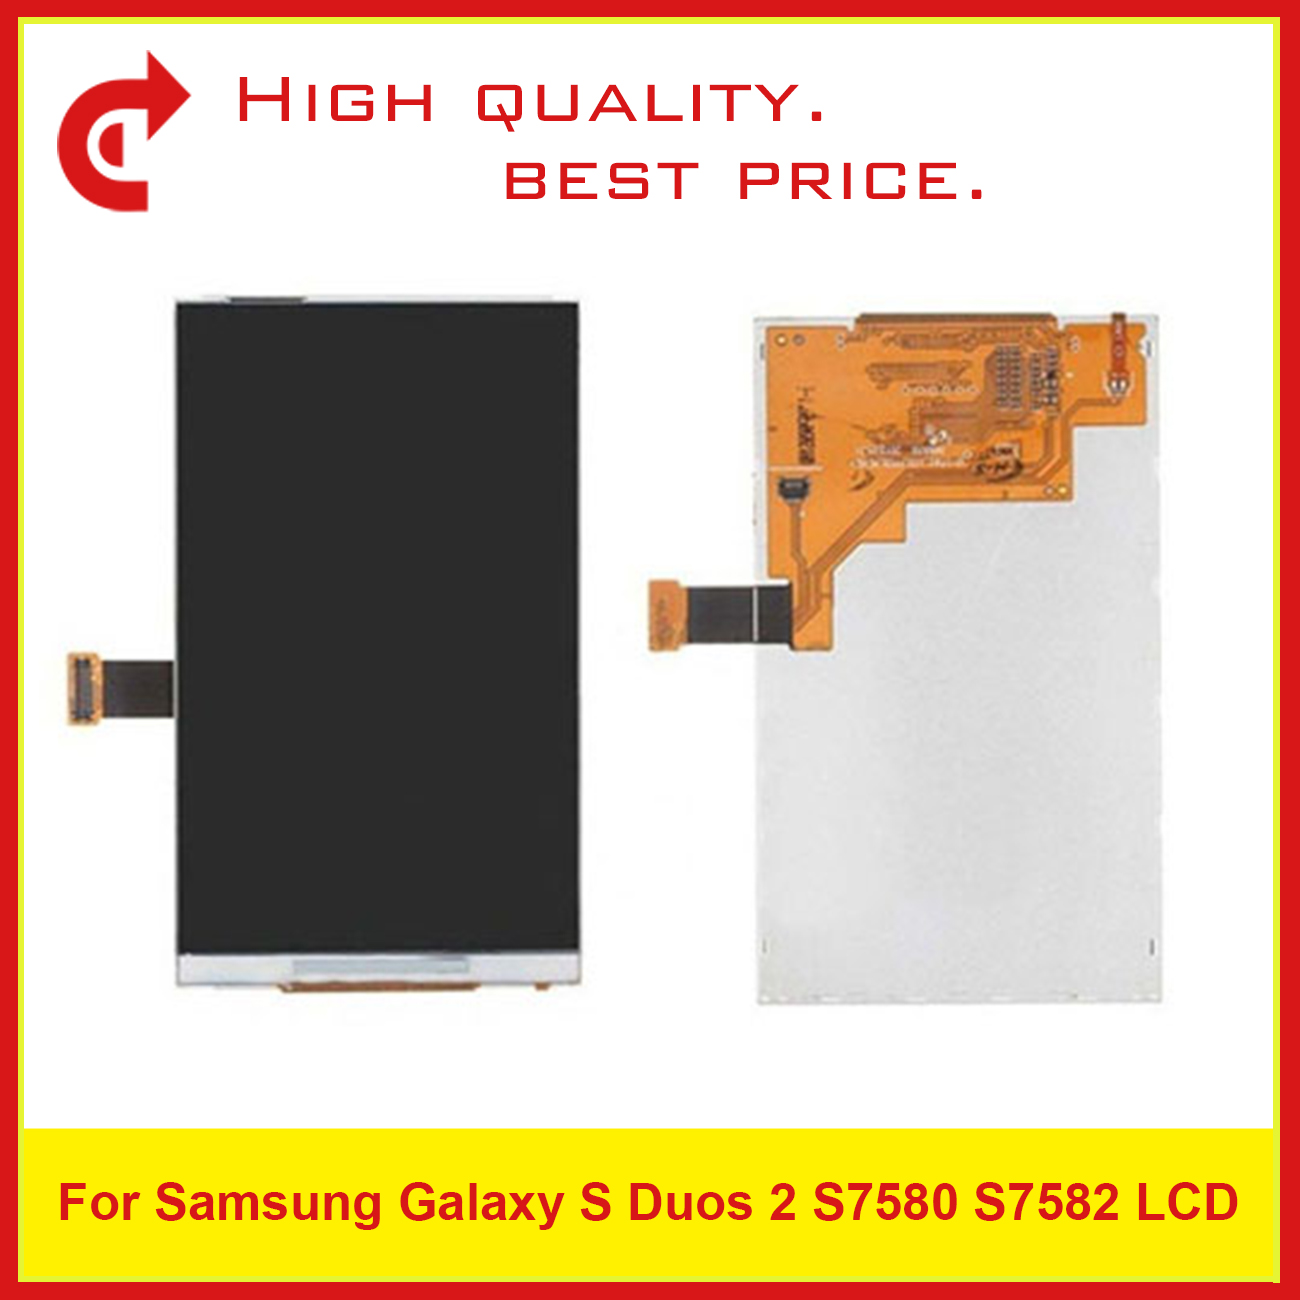 """10Pcs/Lot High Quality 4.0"""" For Samsung Galaxy S Duos 2 S7580 S7582 Lcd Display Screen Free Shipping+Tracking Code-in Mobile Phone LCD Screens from Cellphones & Telecommunications"""